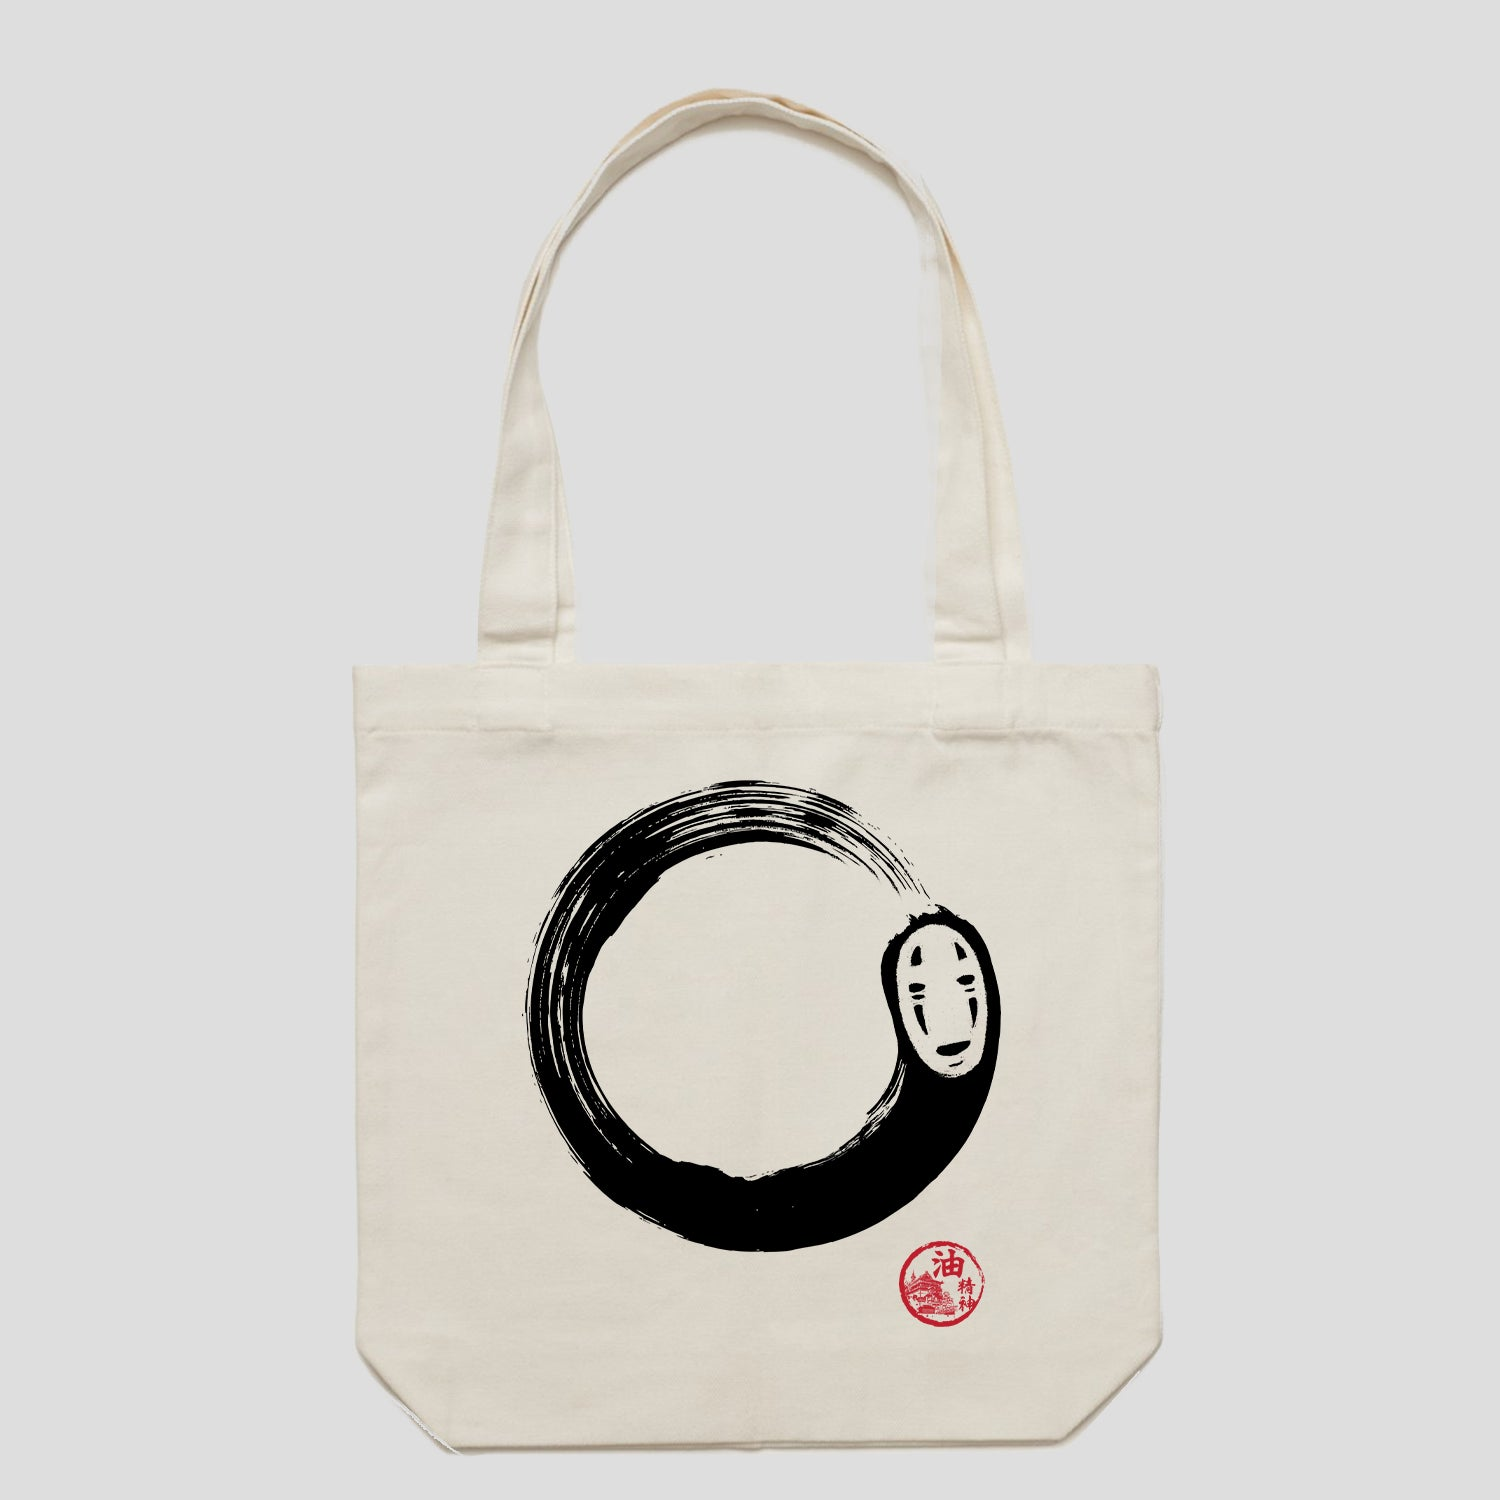 Enso No Face Spirited Away Anime Tote Bag Australia